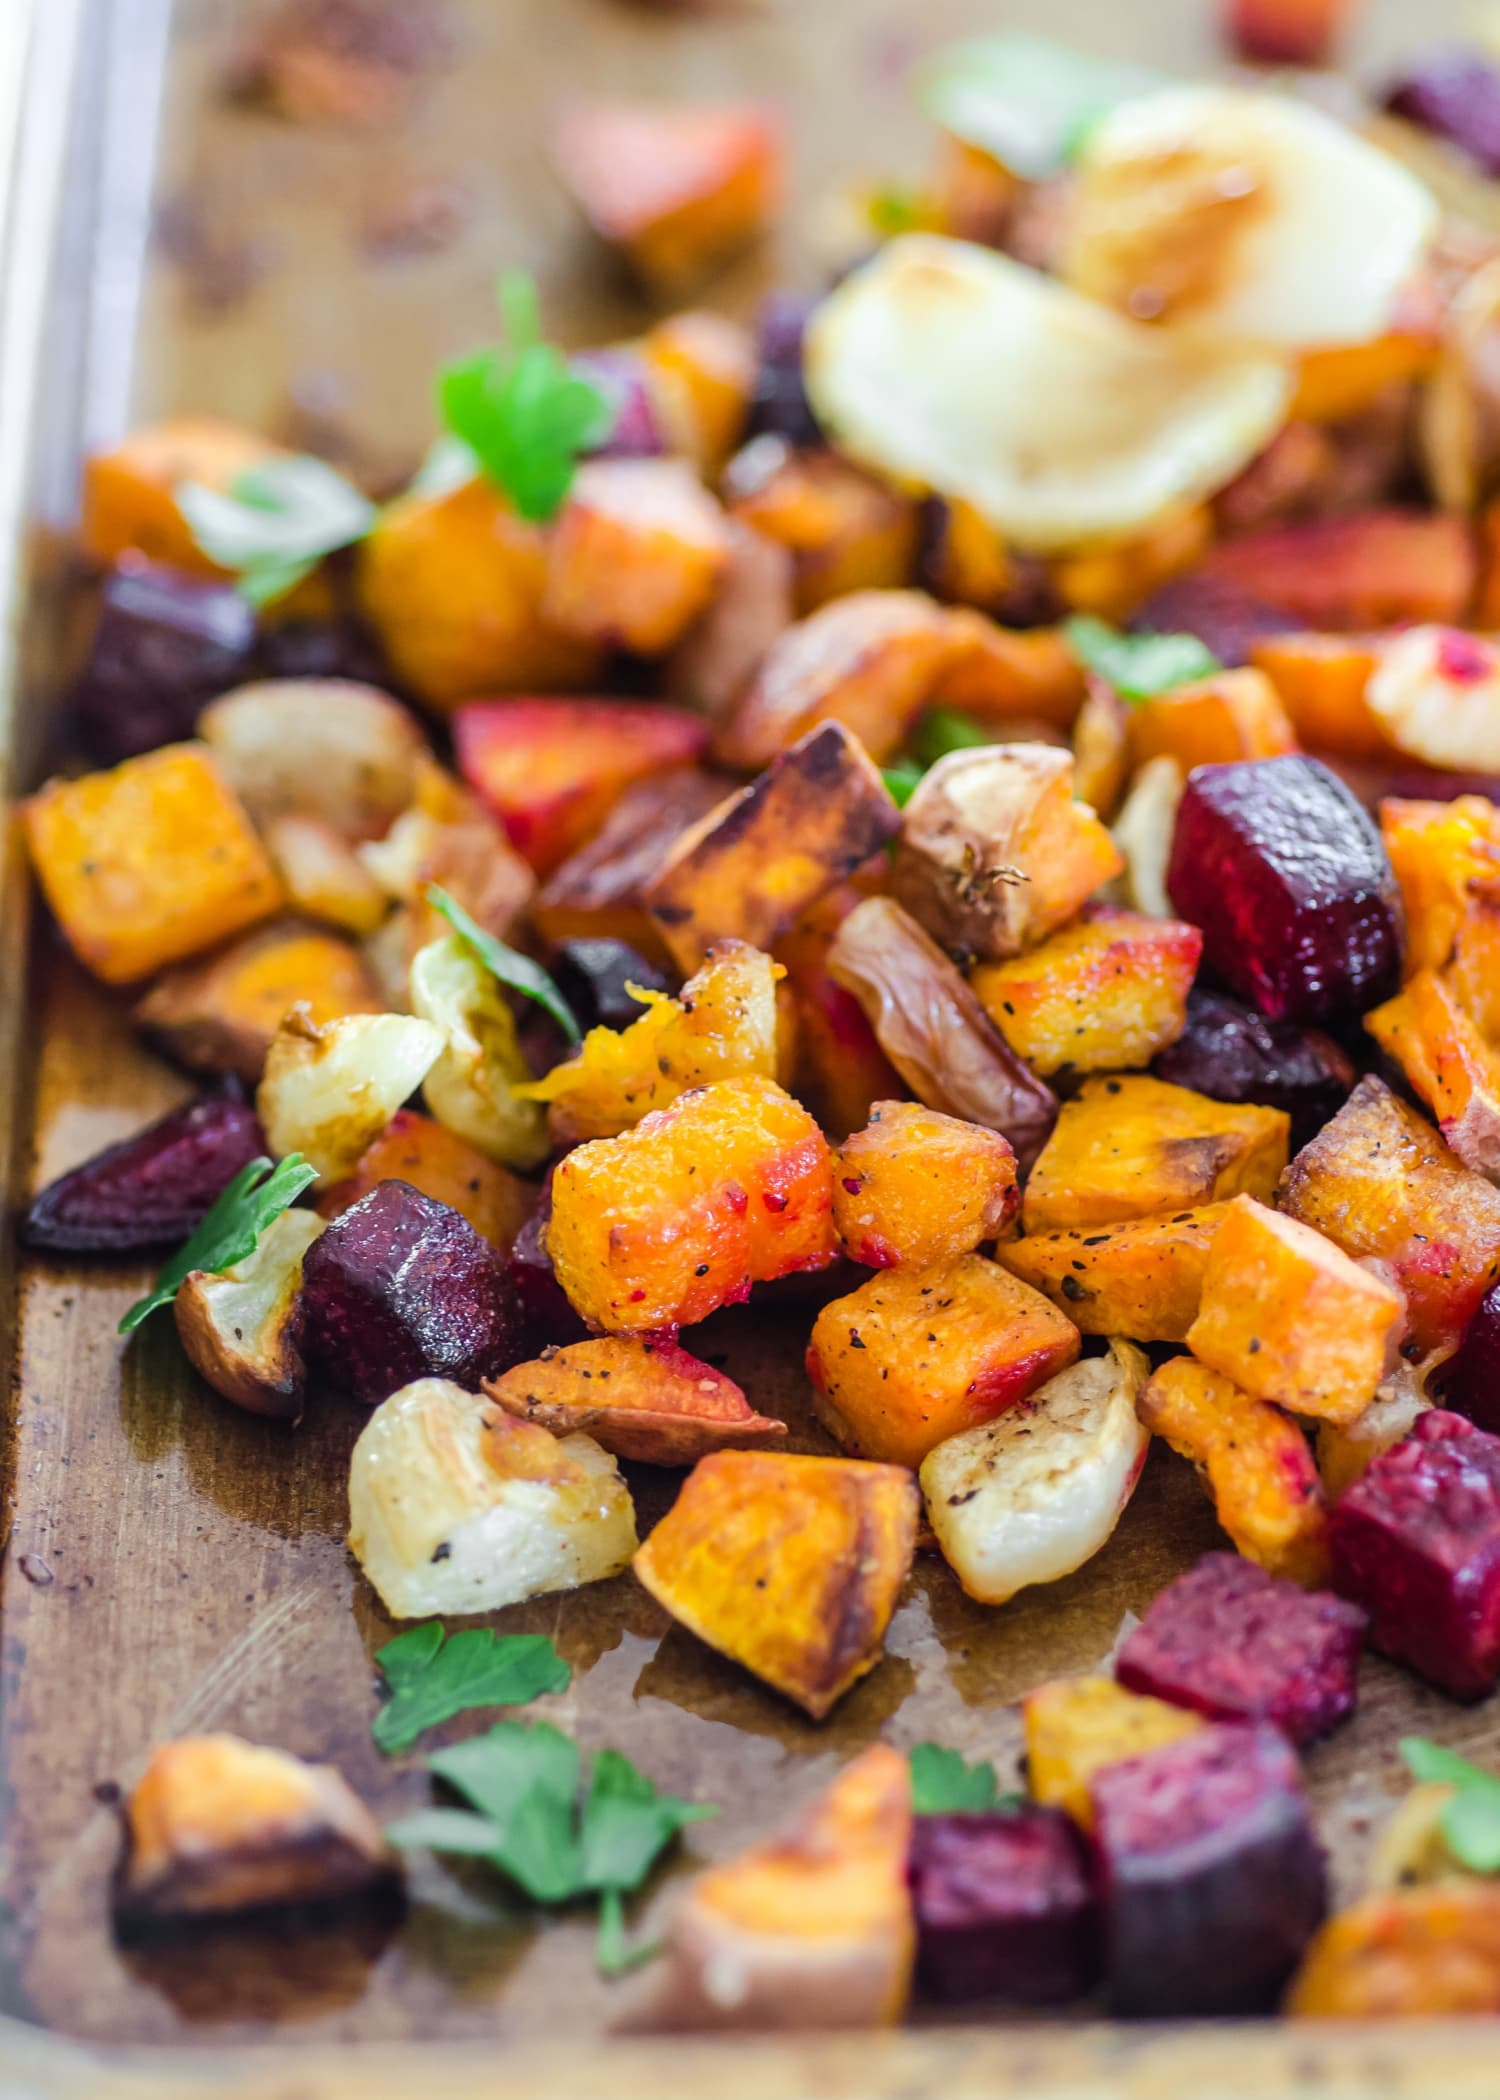 Our 10 Most Popular Roasted Vegetable Recipes